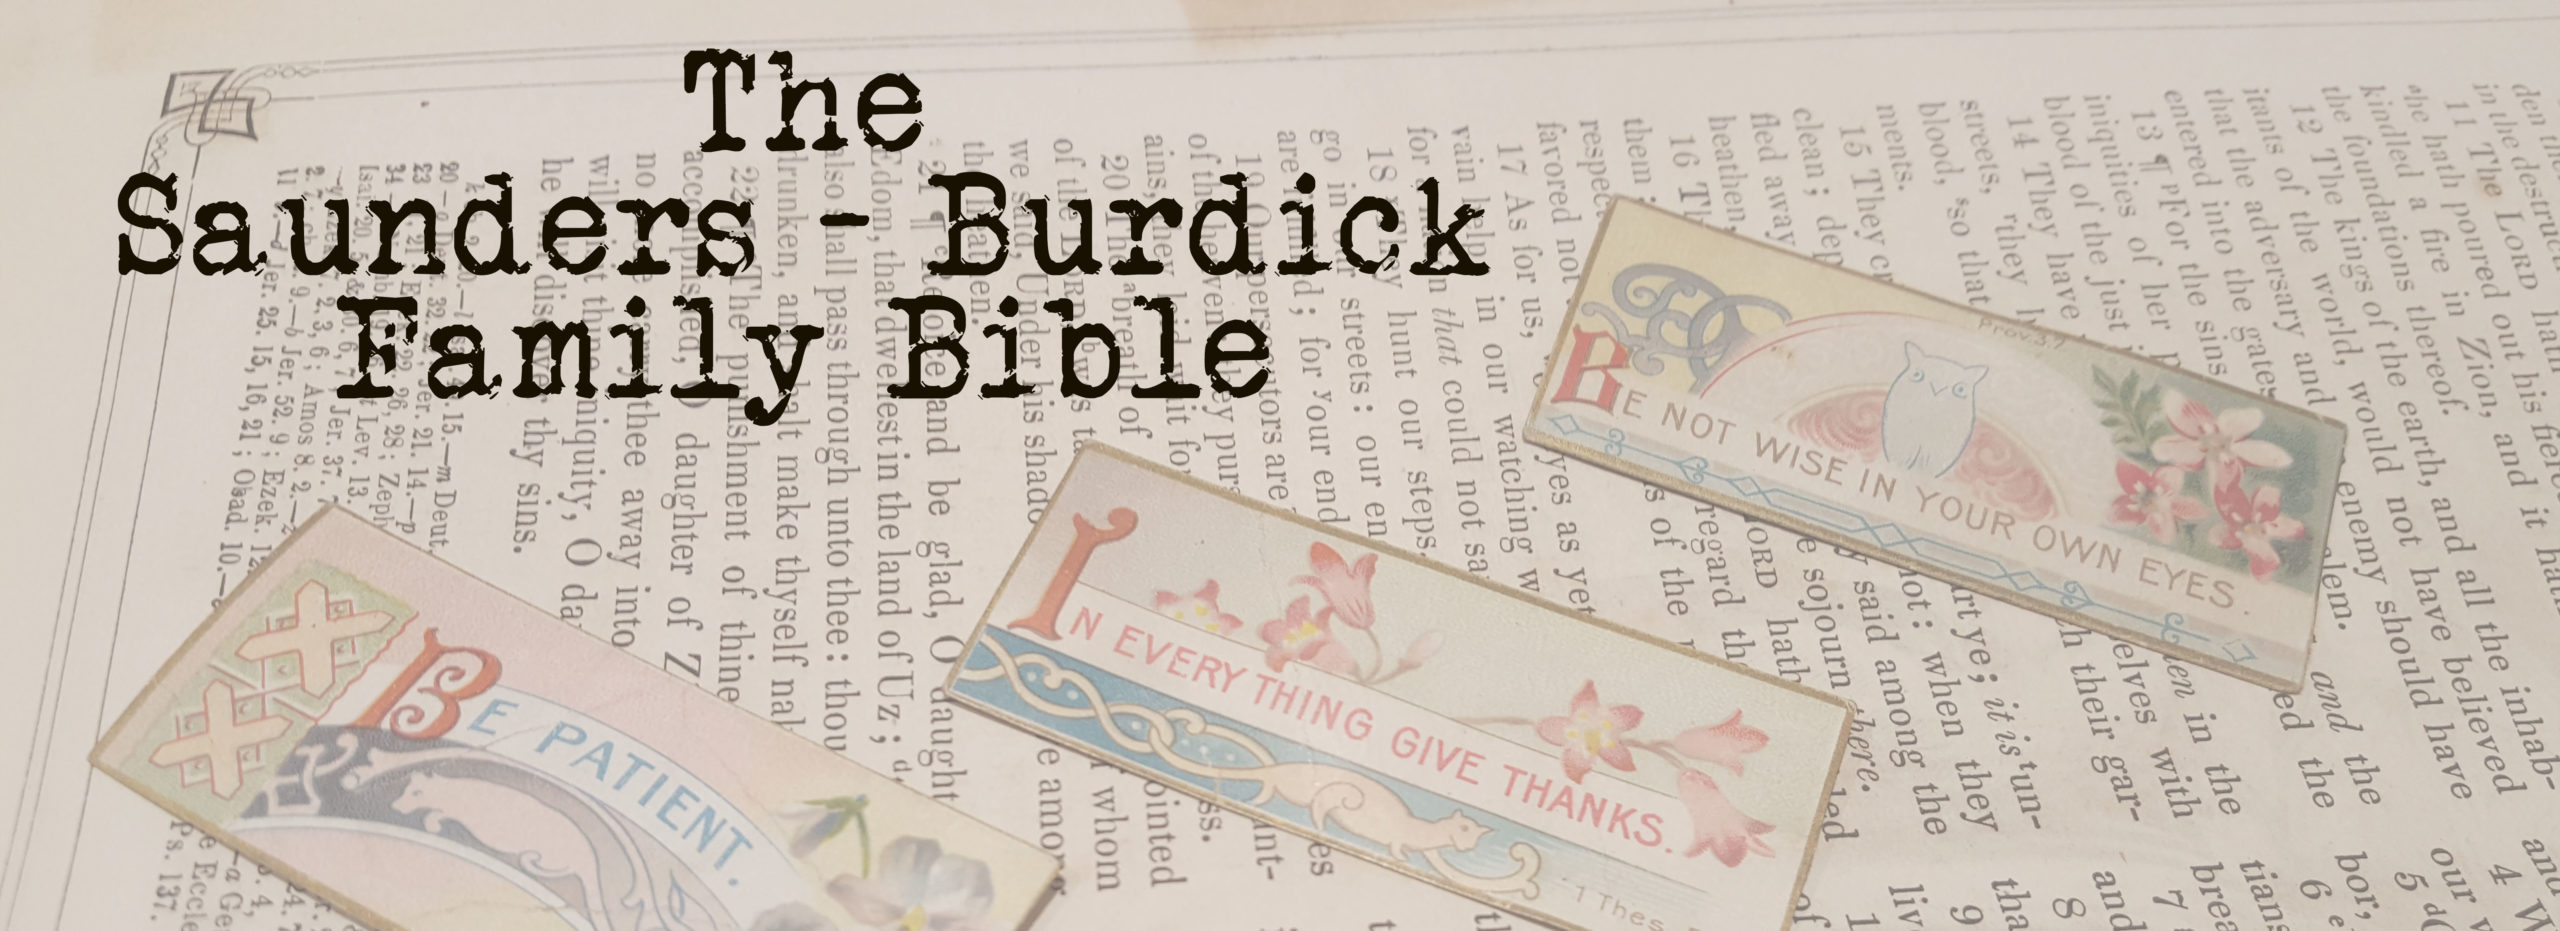 A photo of a page from the Bible with text The Saunders Burdick Family Bible